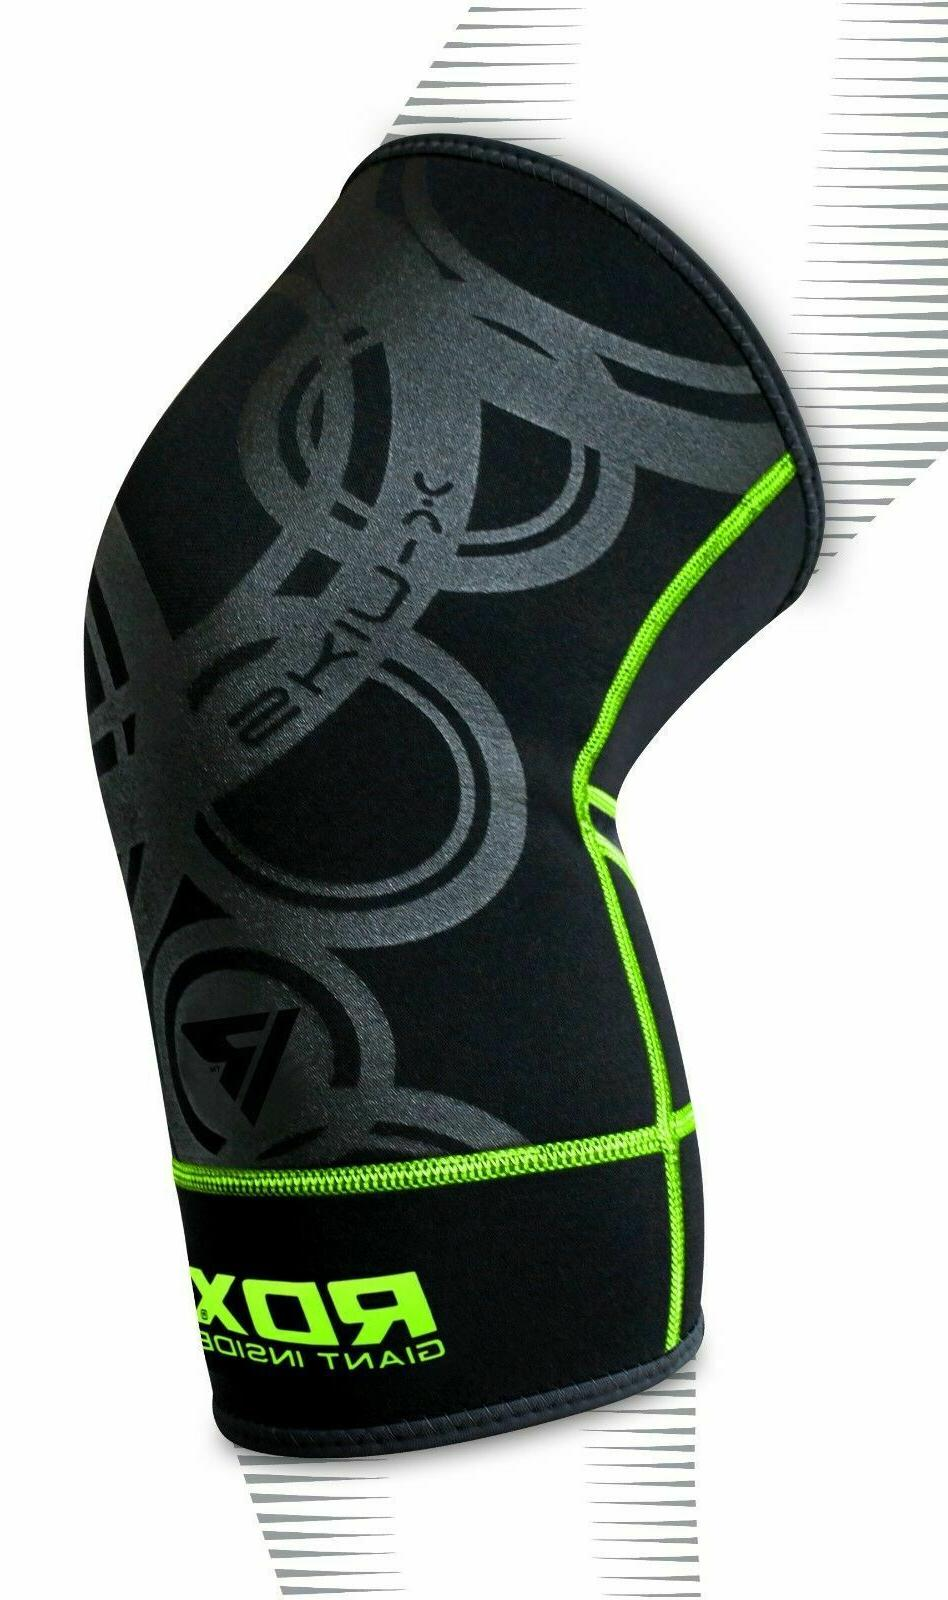 knee support cap protector brace leg injury